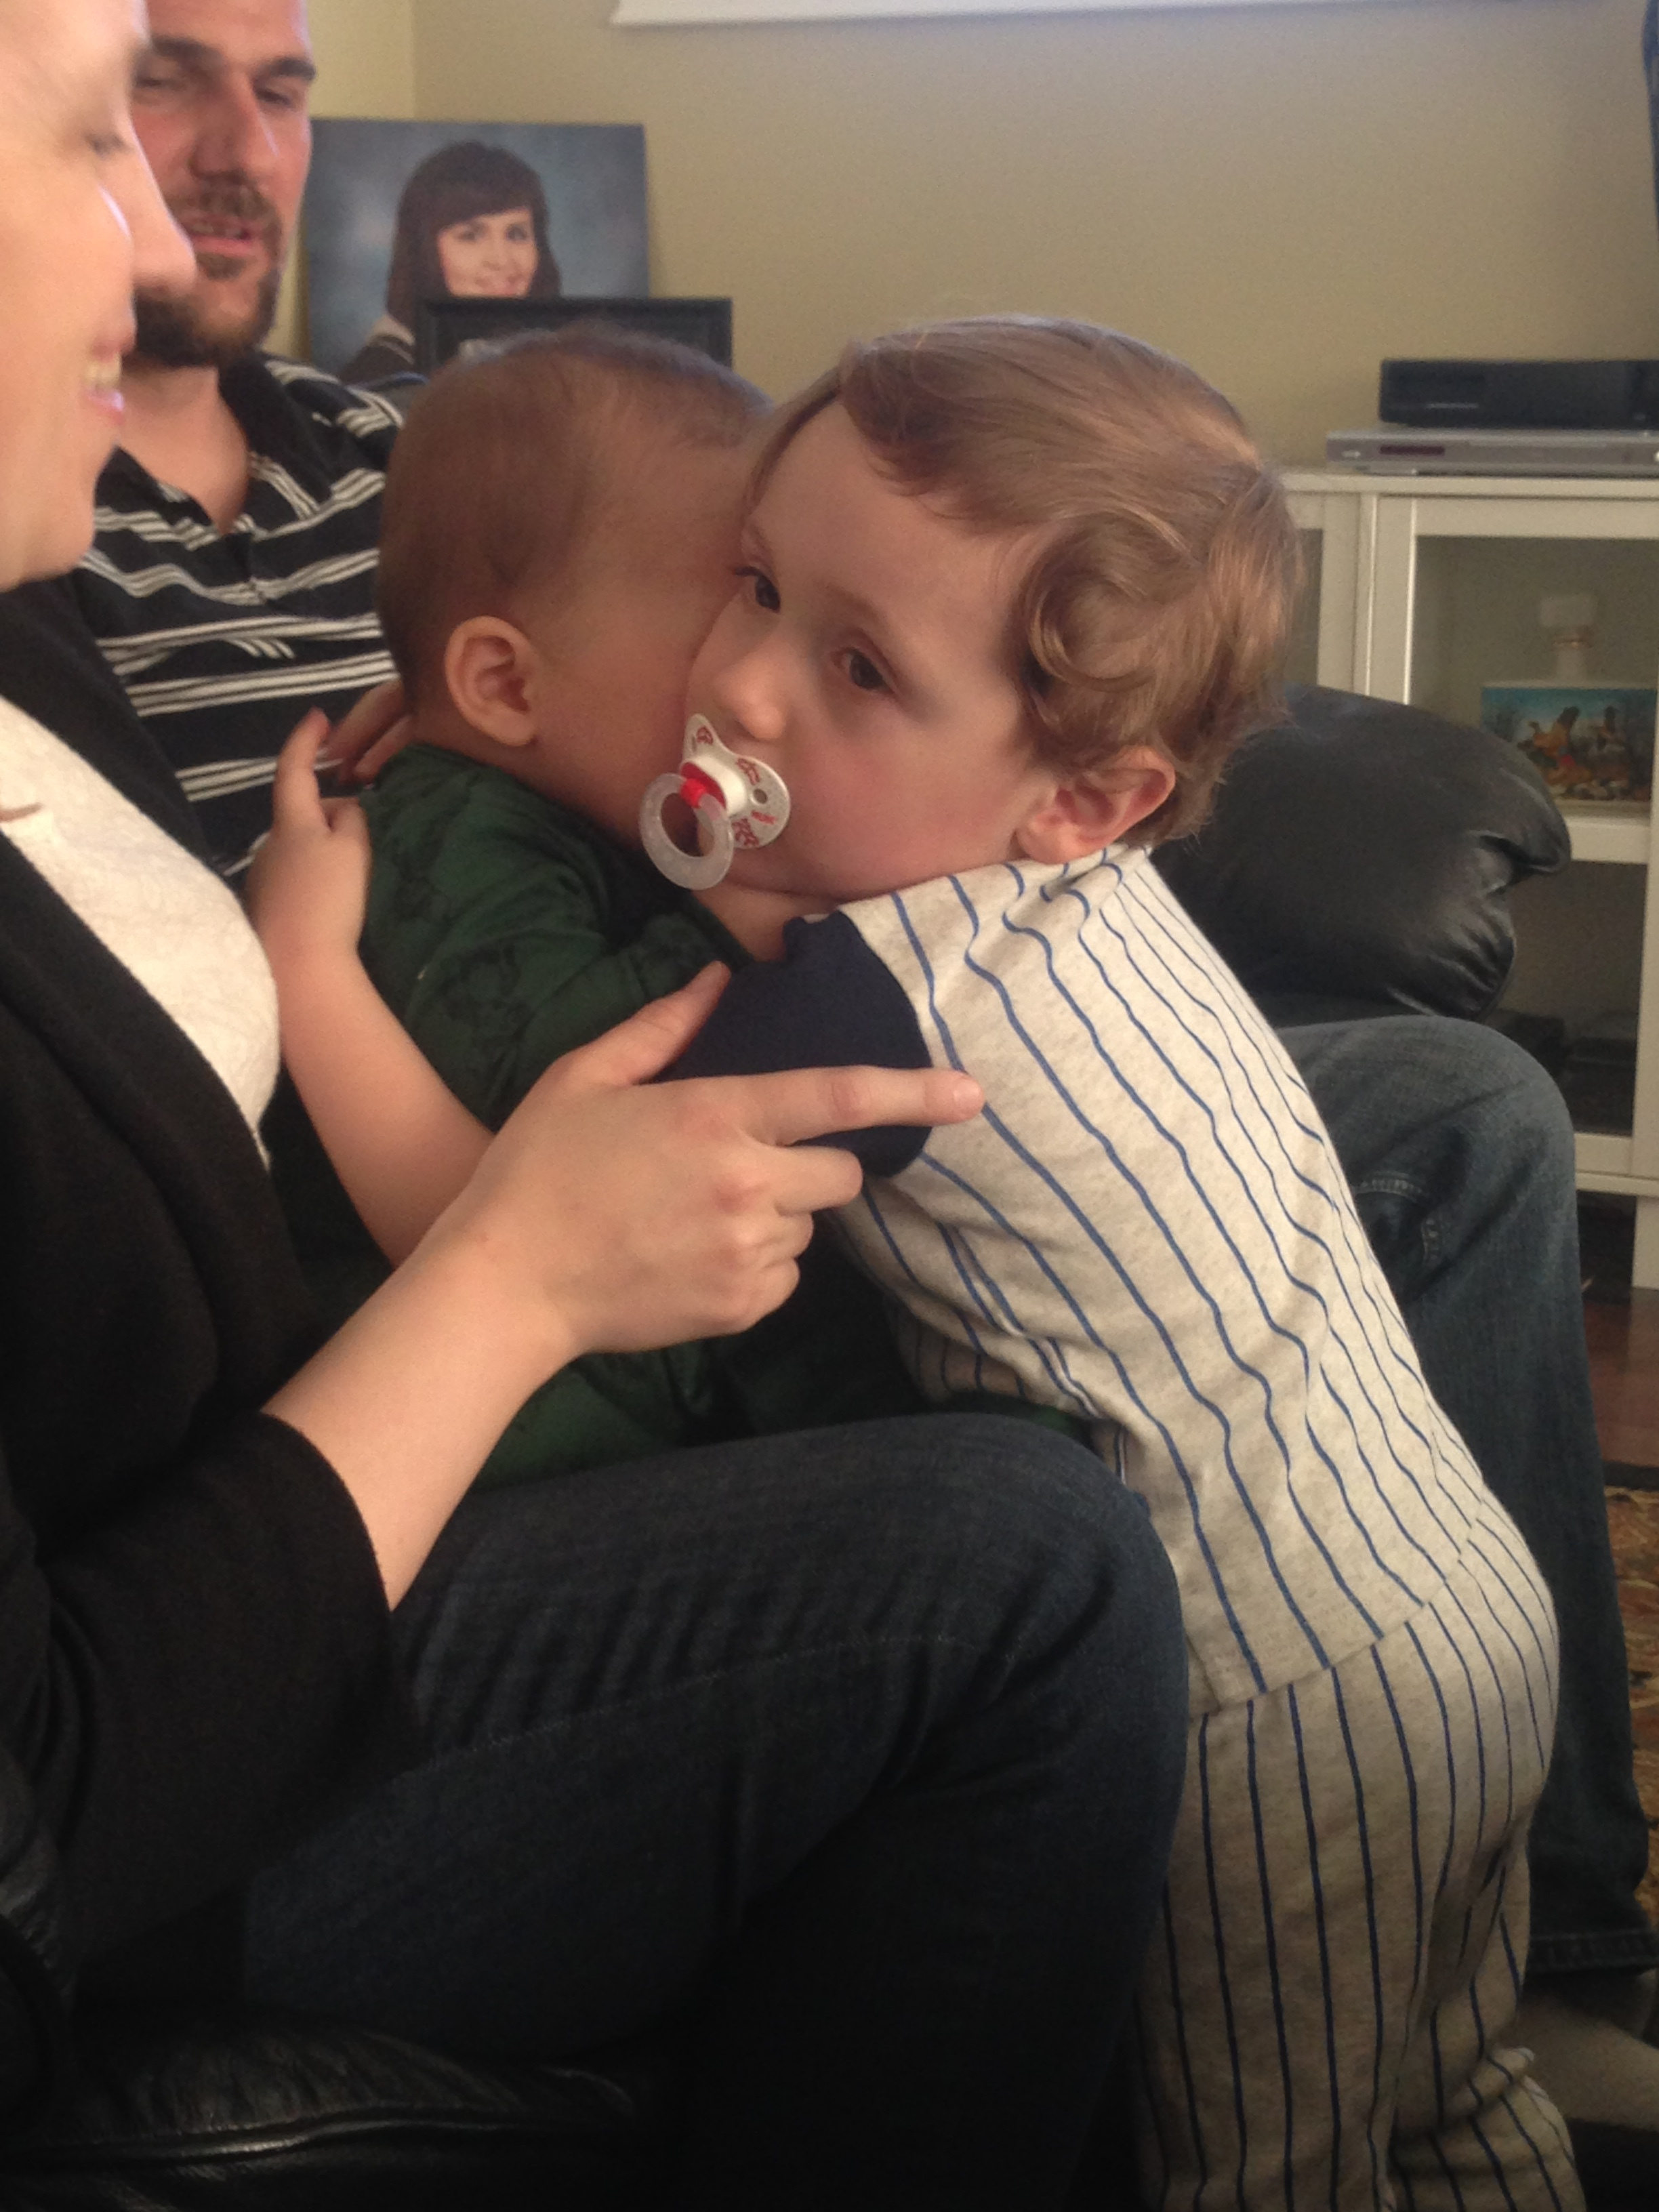 Also look at this pic of my nephew hugging his baby cousin for the first time. B'AWW. Also don't look at the pic of me from graduation in the background, lol. #bangs